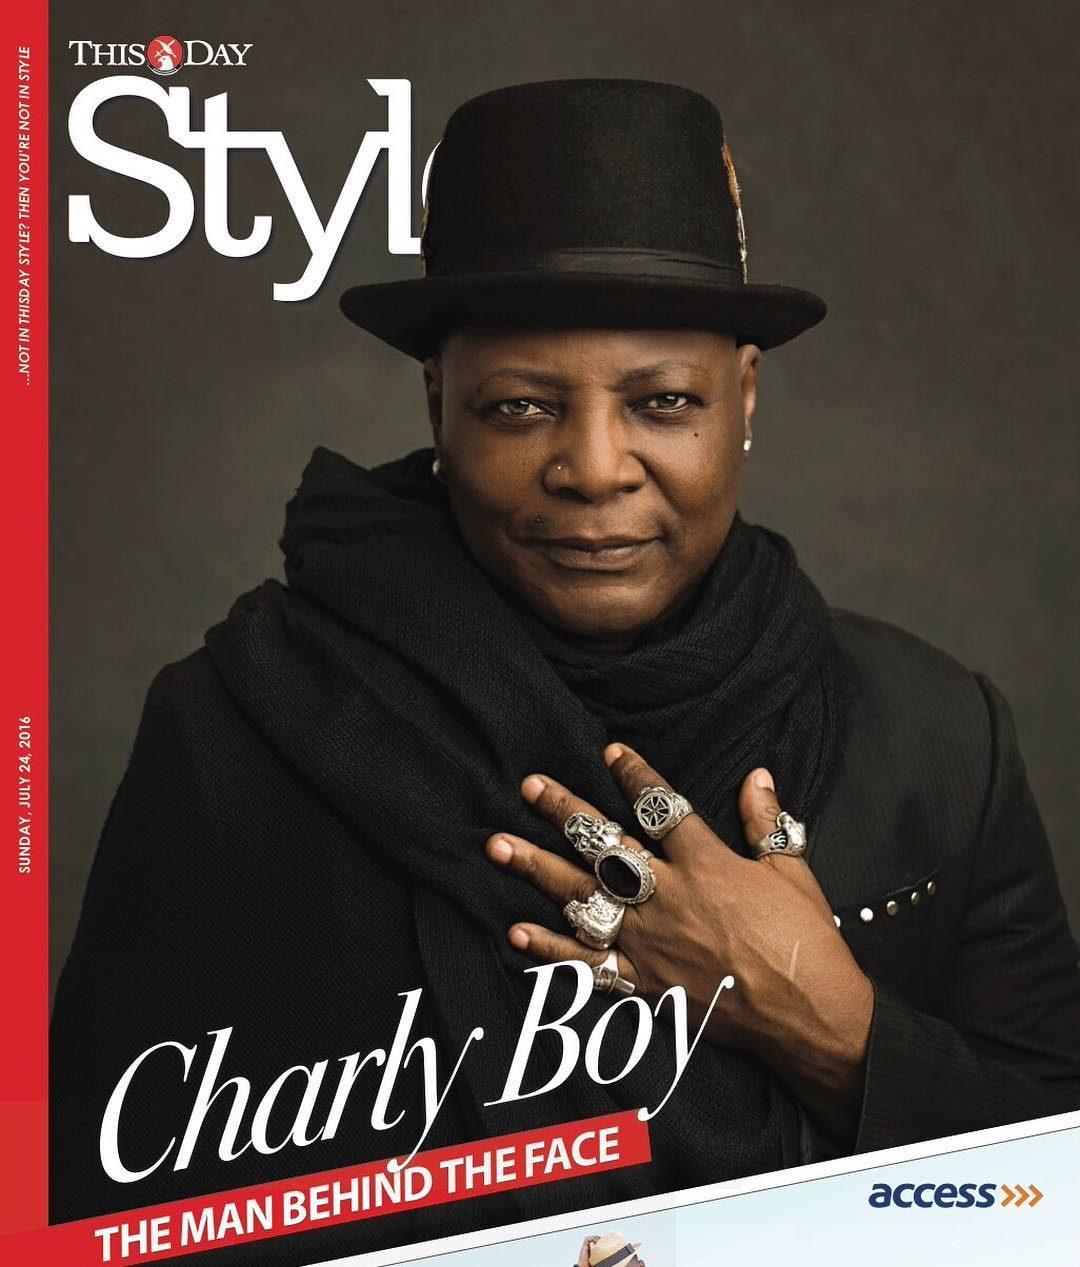 Charly Boy Covers This Week's Issue of ThisDay Style ...